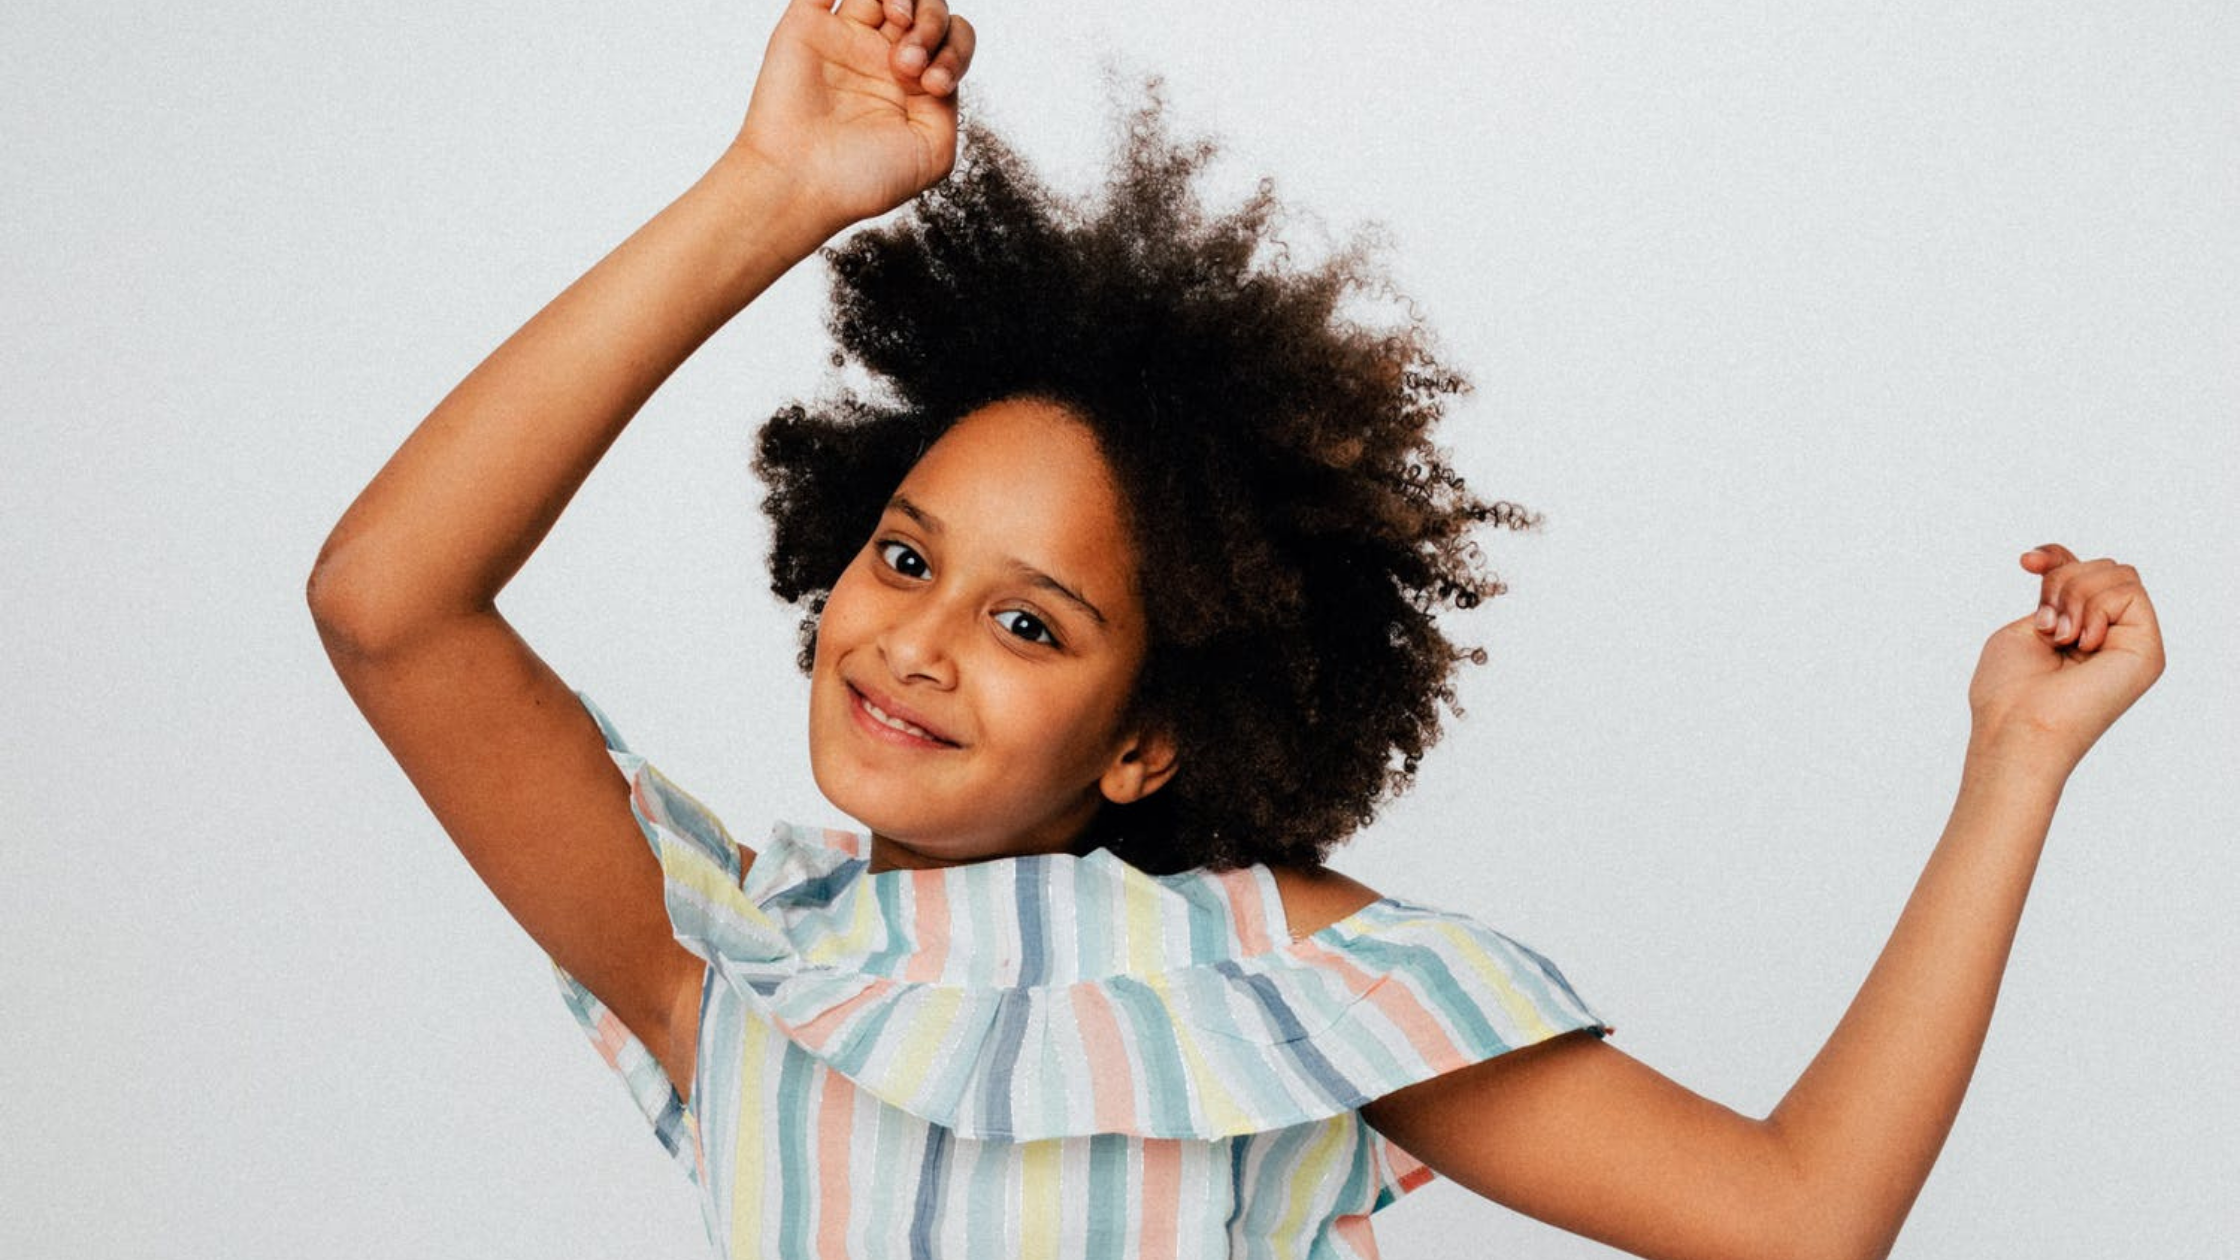 A young African American girl smiles at the camera wither her hands in the air